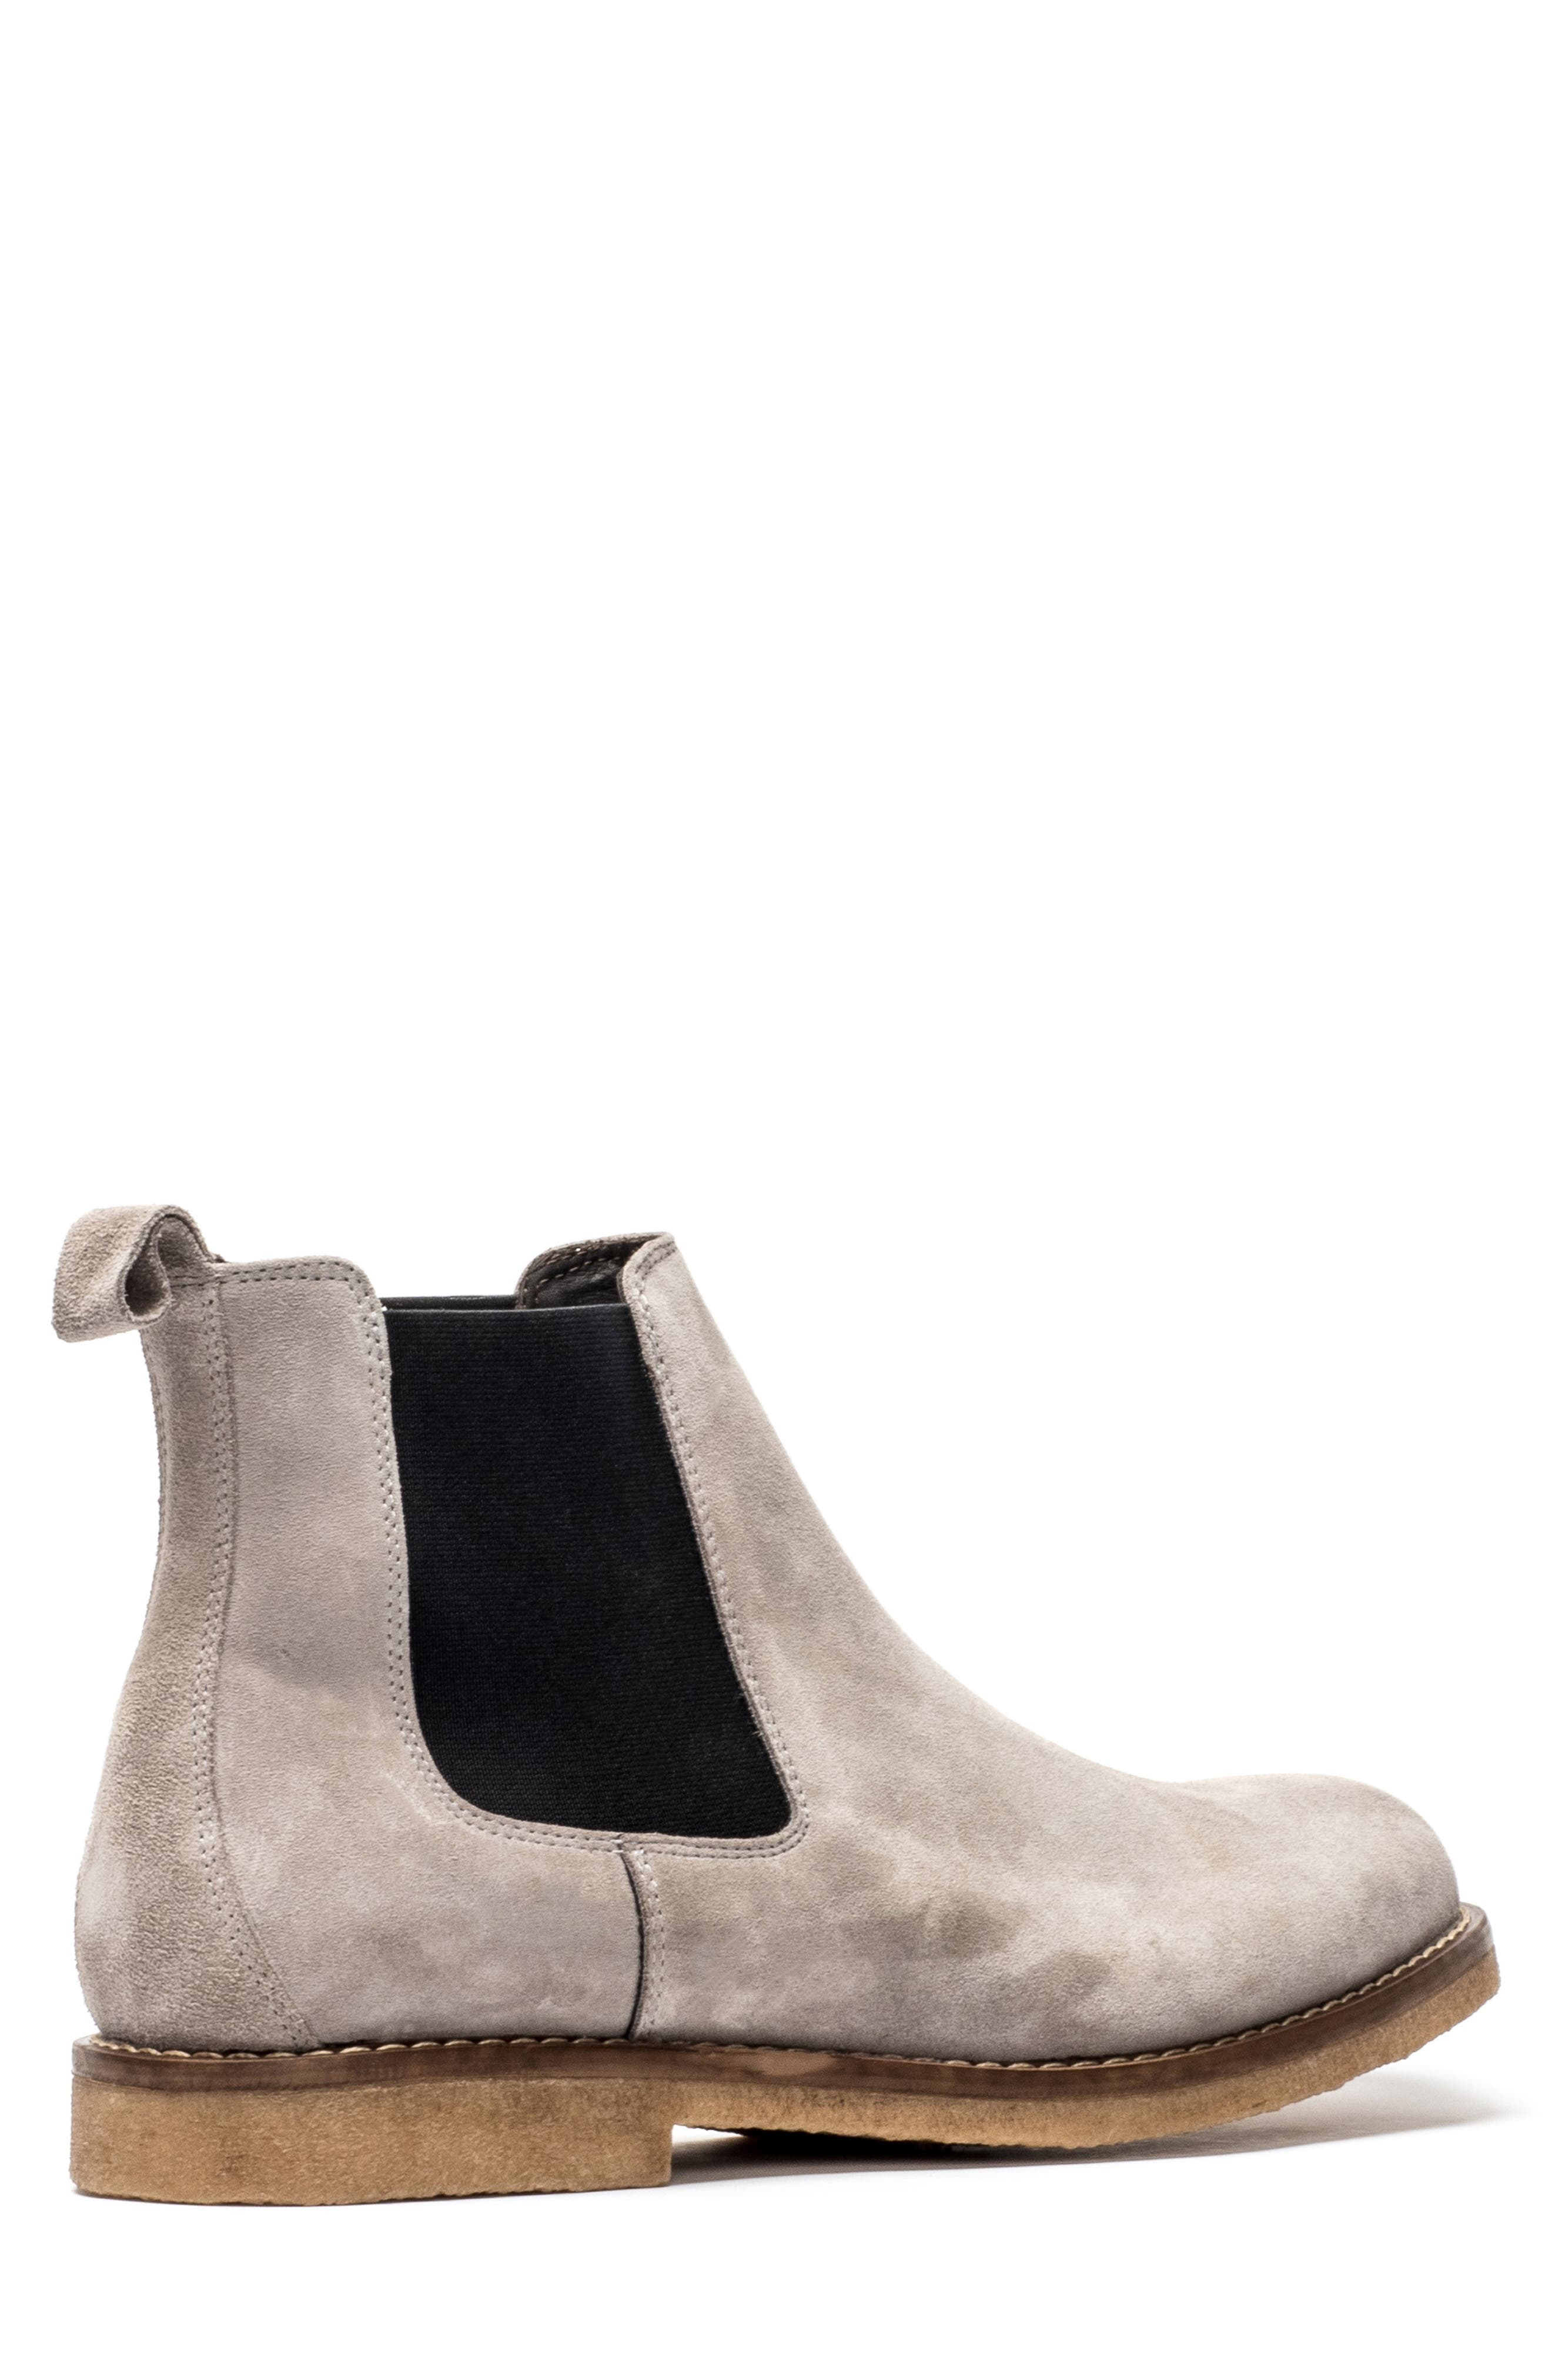 Gertrude Valley Water Repellent Chelsea Boot,                             Alternate thumbnail 2, color,                             STONE